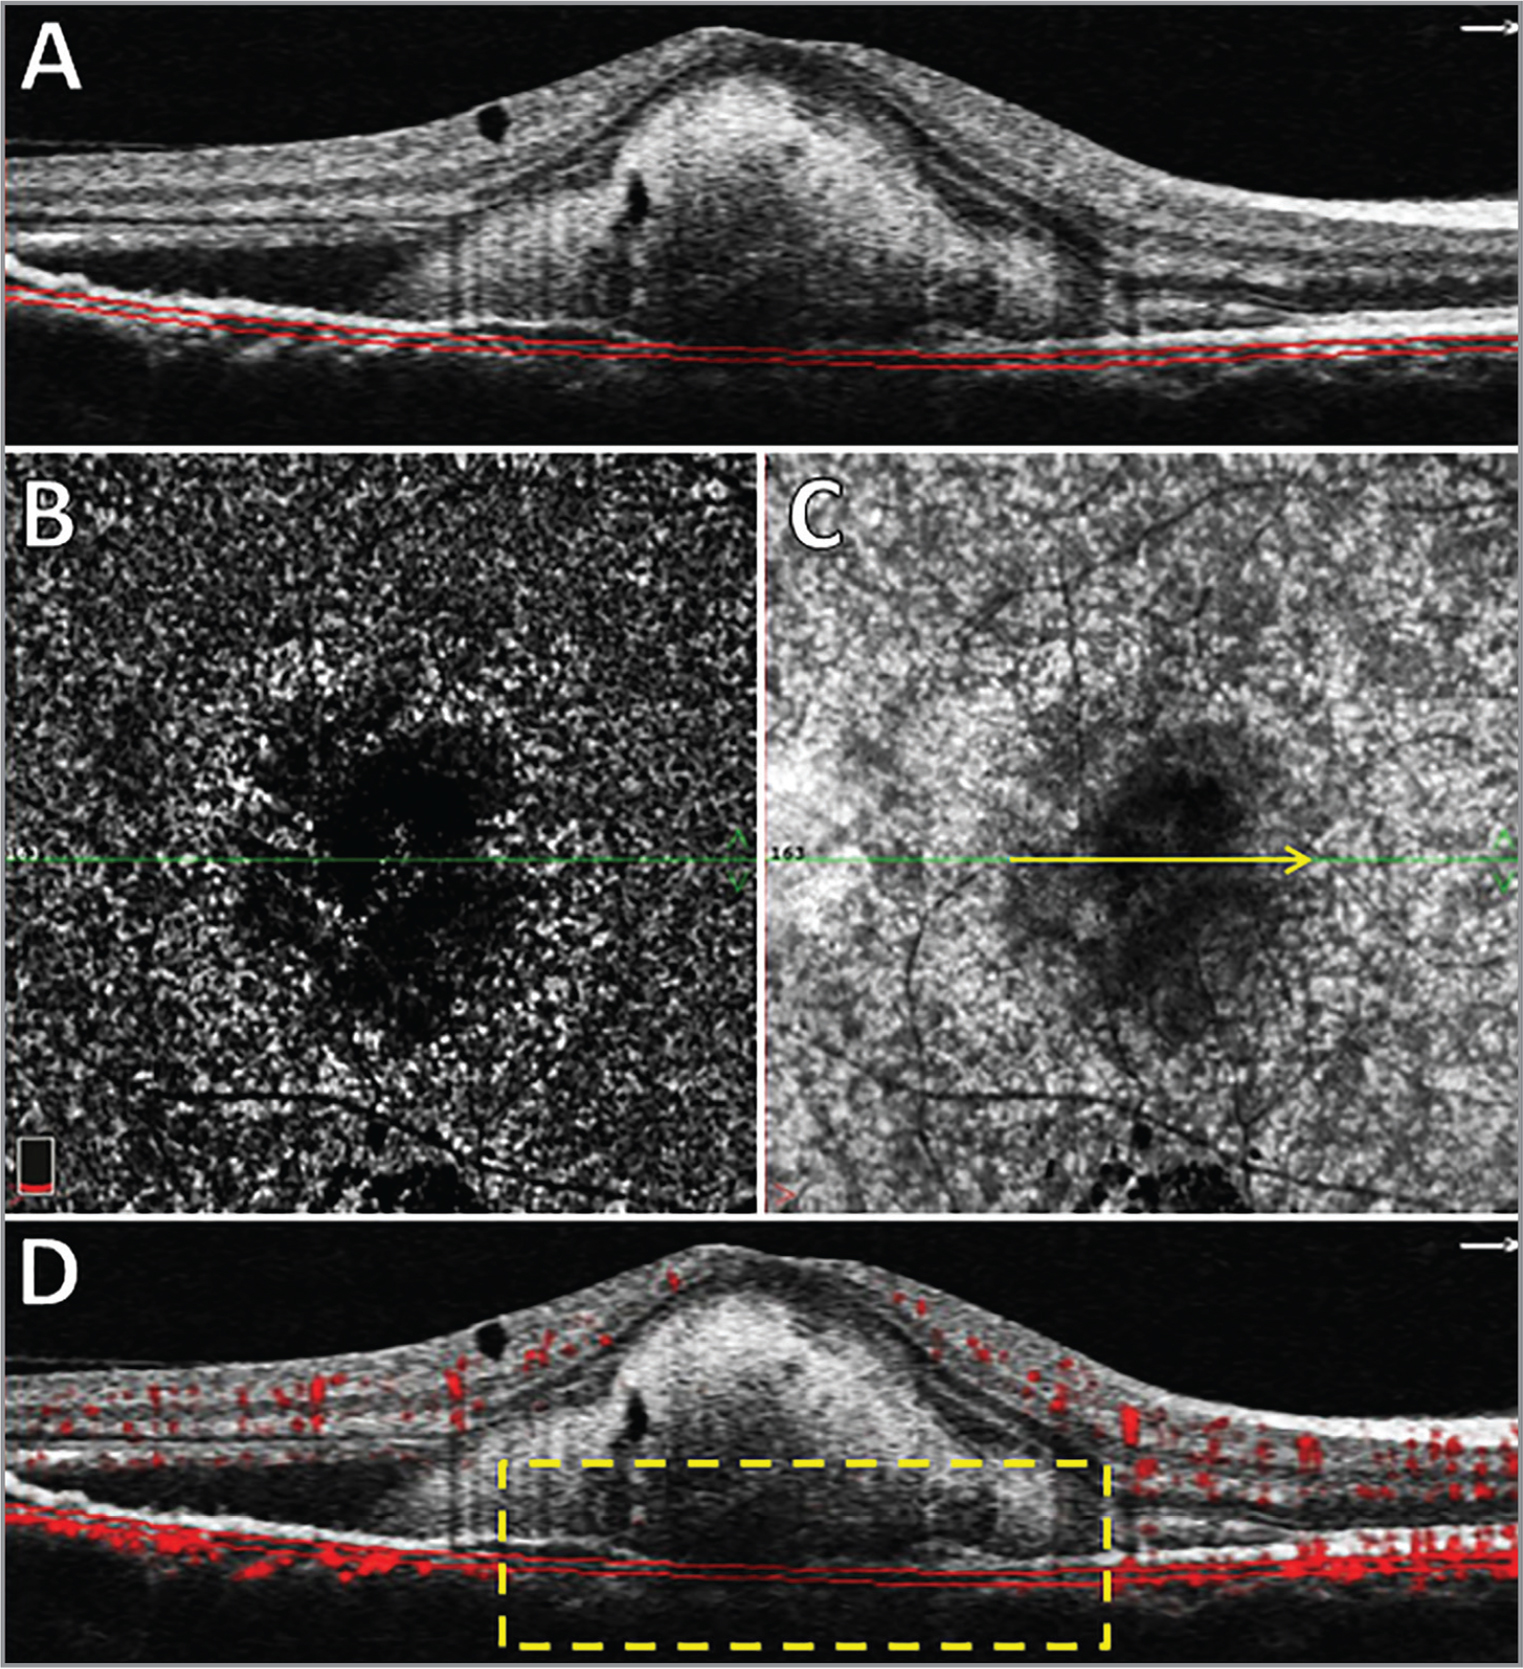 (A) B-scan structural optical coherence tomography (OCT) showing submacular hyperreflective material and subretinal fluid. The parallel red lines indicate the automatic segmentation of the choriocapillaris (CC). (B) En face flow image of the CC, showing a dark central area, suggesting hypoperfusion. (C) Structural image of the CC, showing a hyporeflective central area, revealing an attenuation of the signal from the CC, probably due to interference by the subretinal hyperreflective material. (D) OCT angiography B-scan exhibiting a questionable decrease in the decorrelation signal from the CC (yellow rectangle). The yellow rectangle corresponds to the yellow arrow in C crossing the fovea.